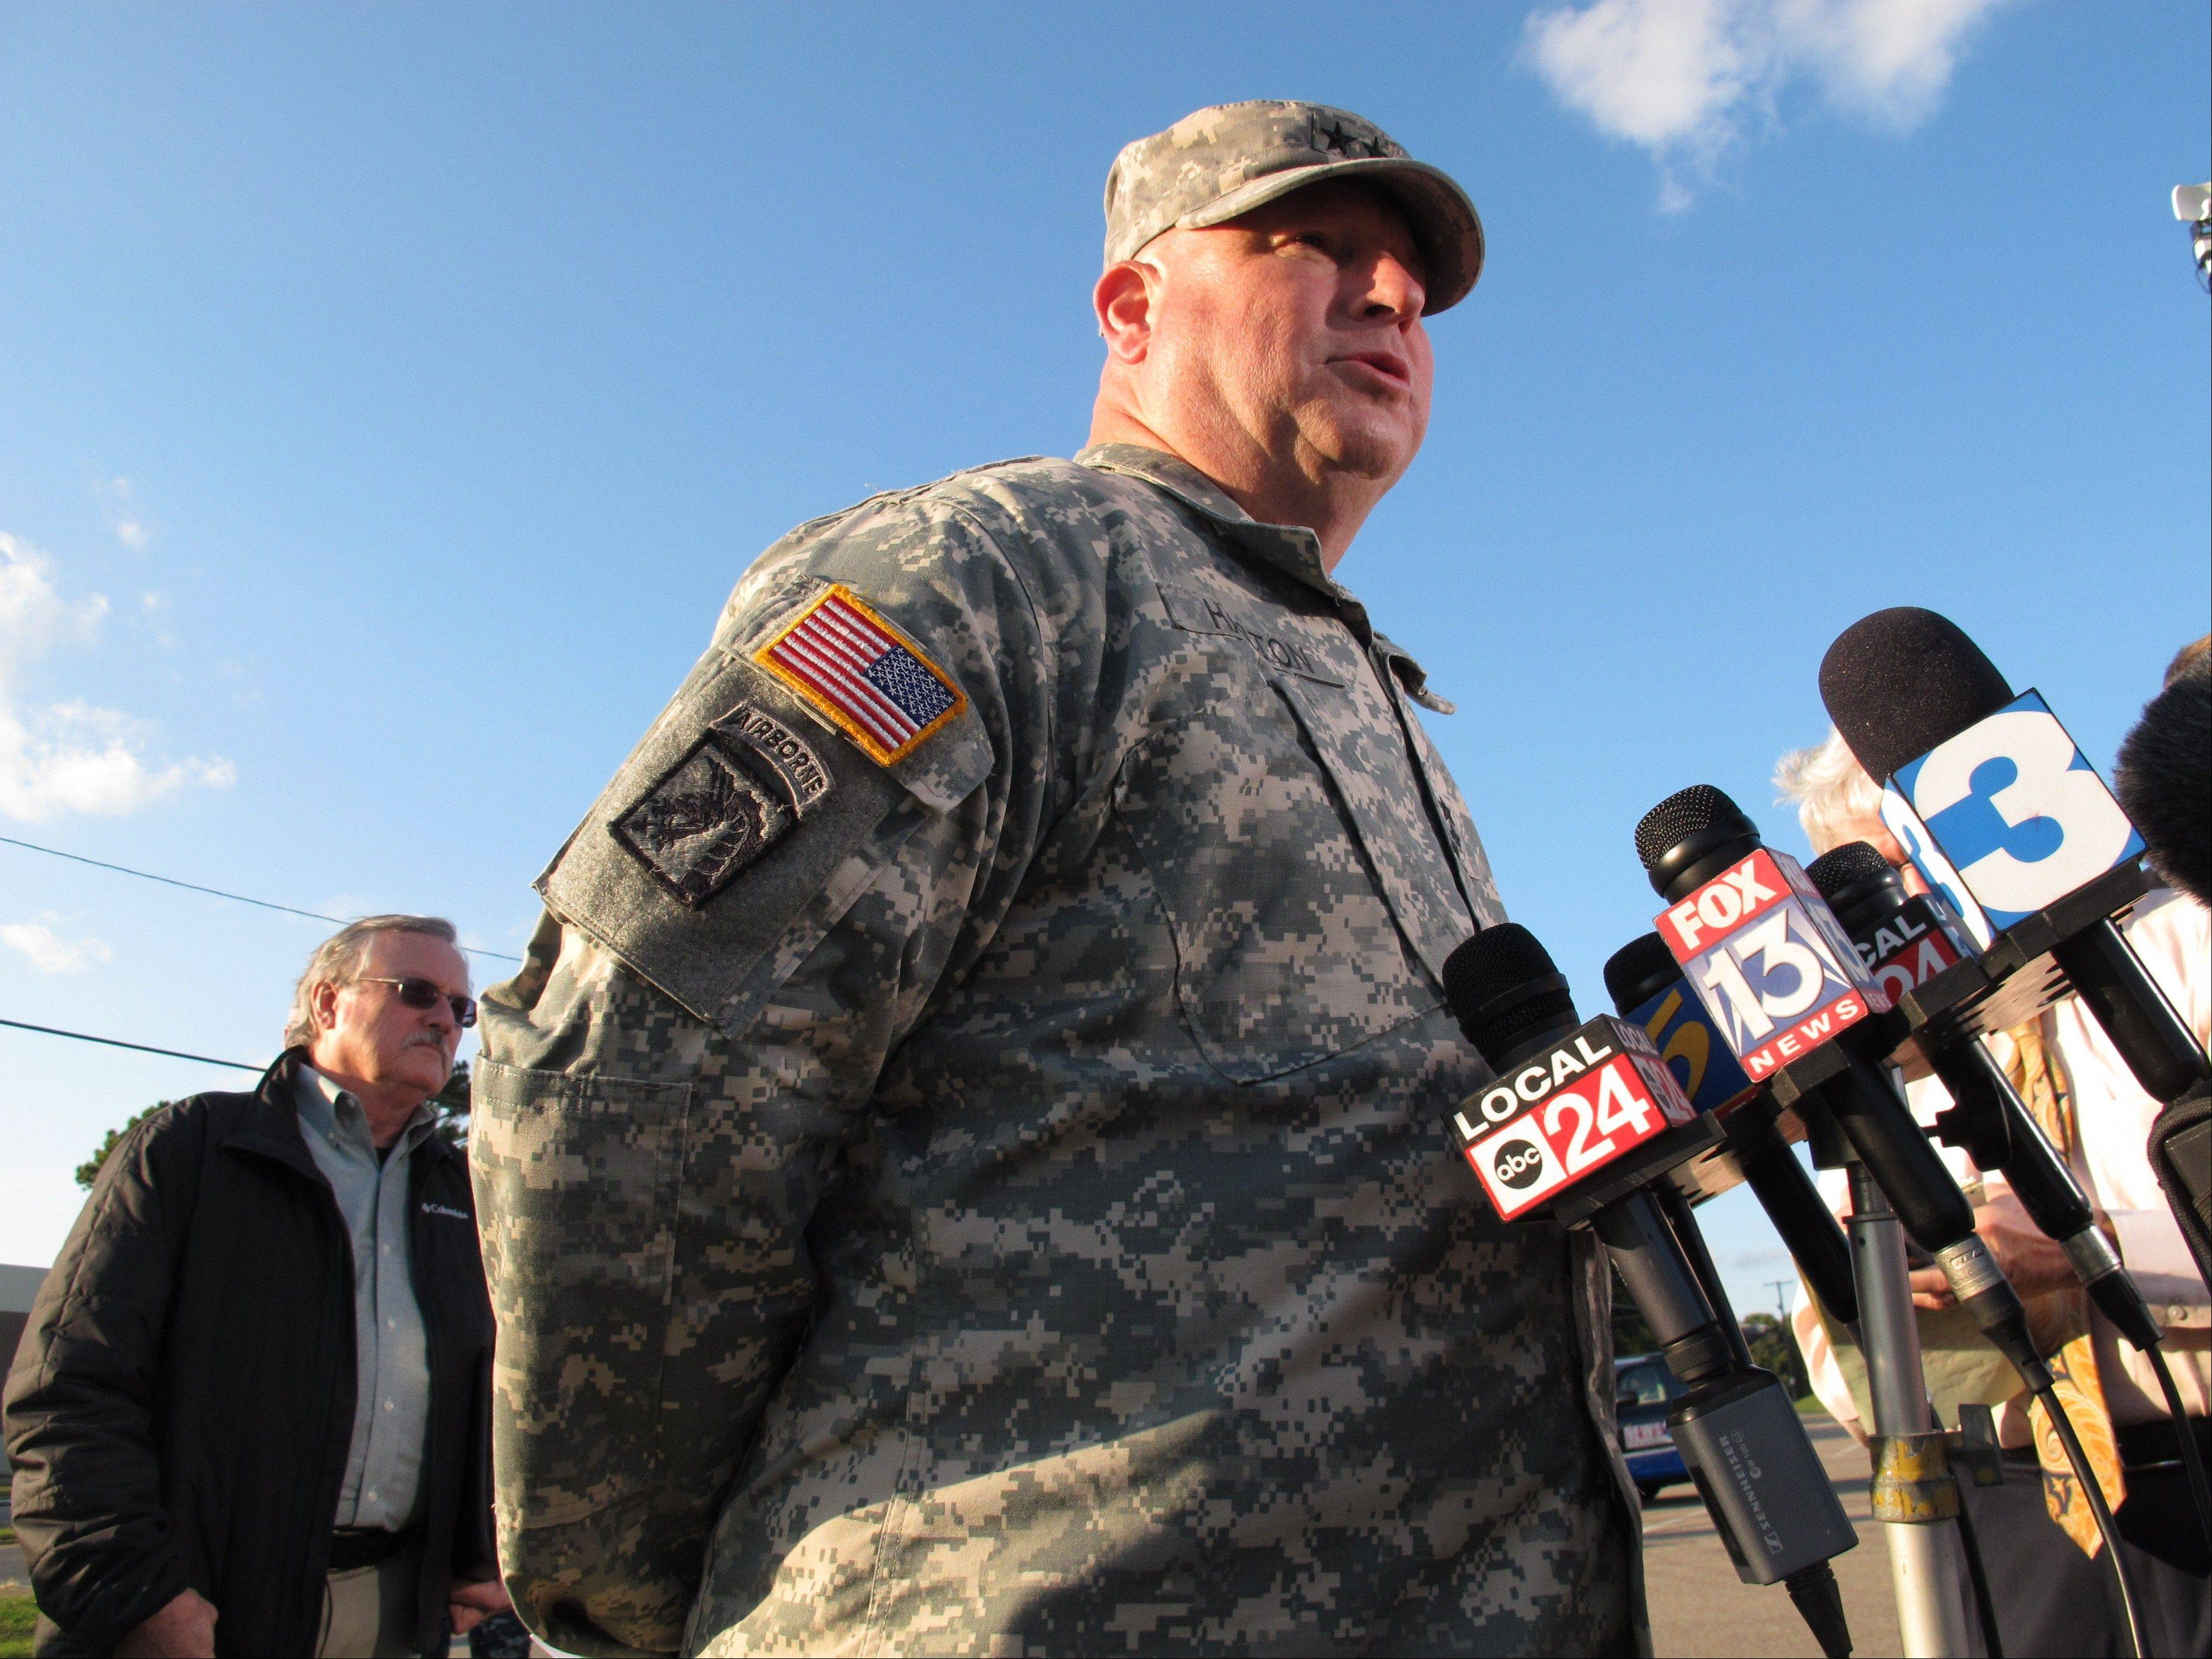 Maj. Gen. Max Haston, right, Adjutant General of the Tennessee National Guard, speaks at a news conference near a Guard armory where two Guard members were shot Thursday in Millington, Tenn. At left is Tennessee National Guard spokesman Randy Harris.